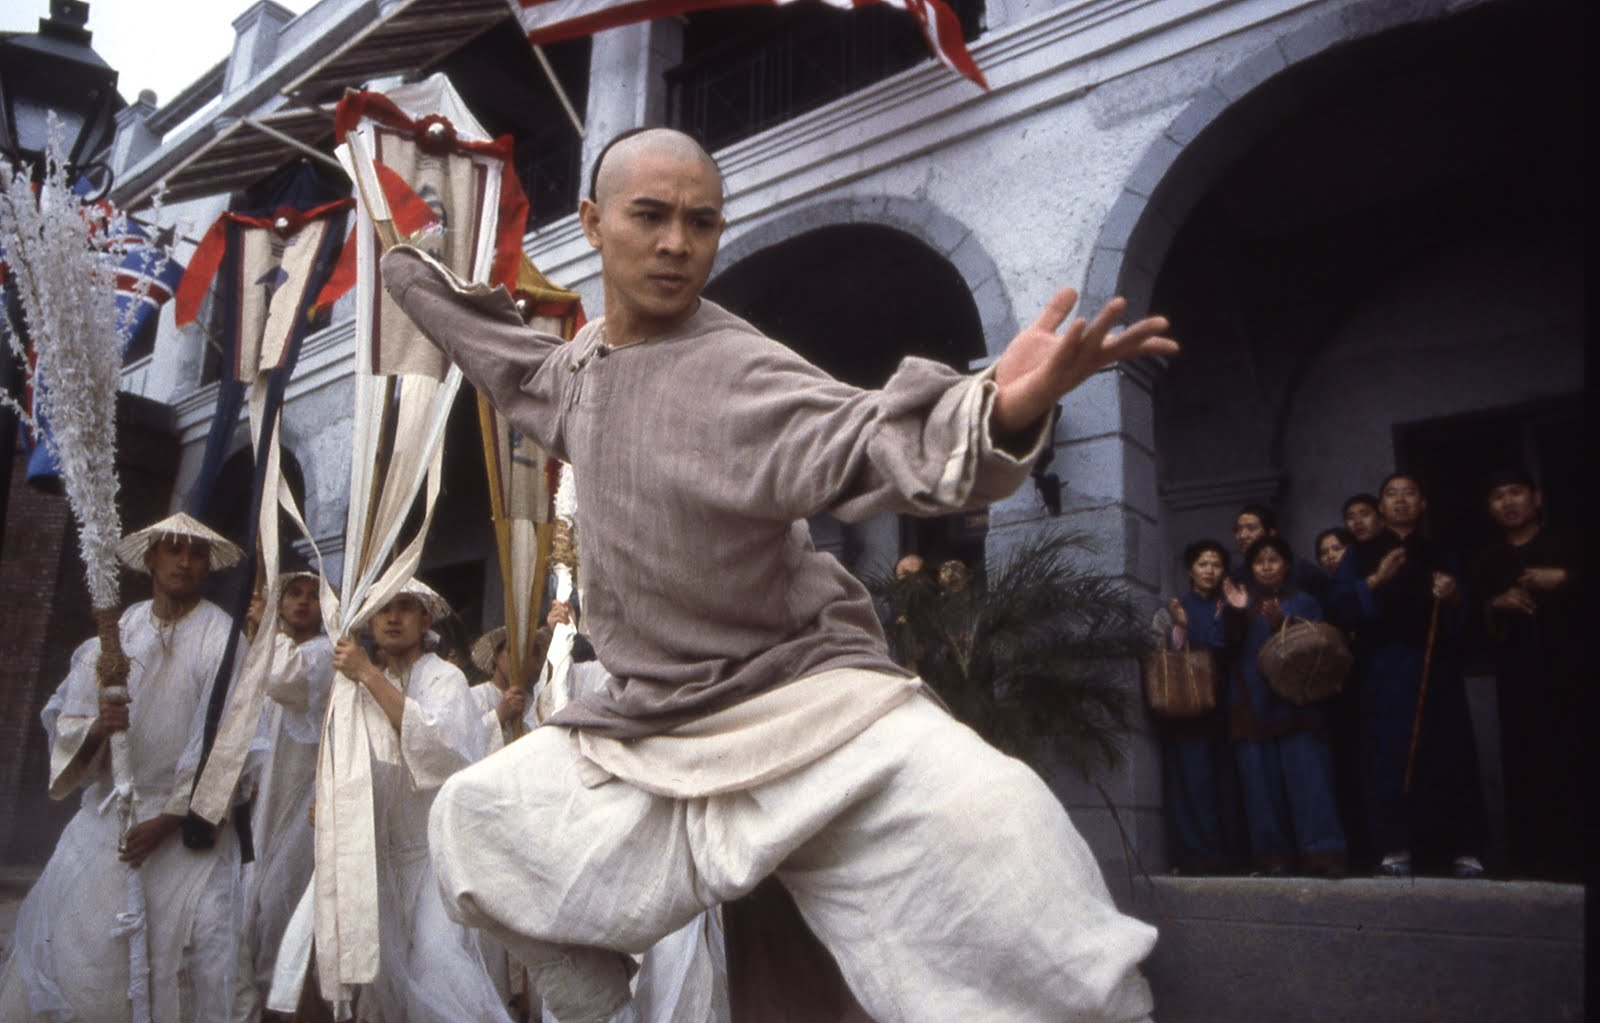 Jet will next be seen on the Jet Li Fighting Stance